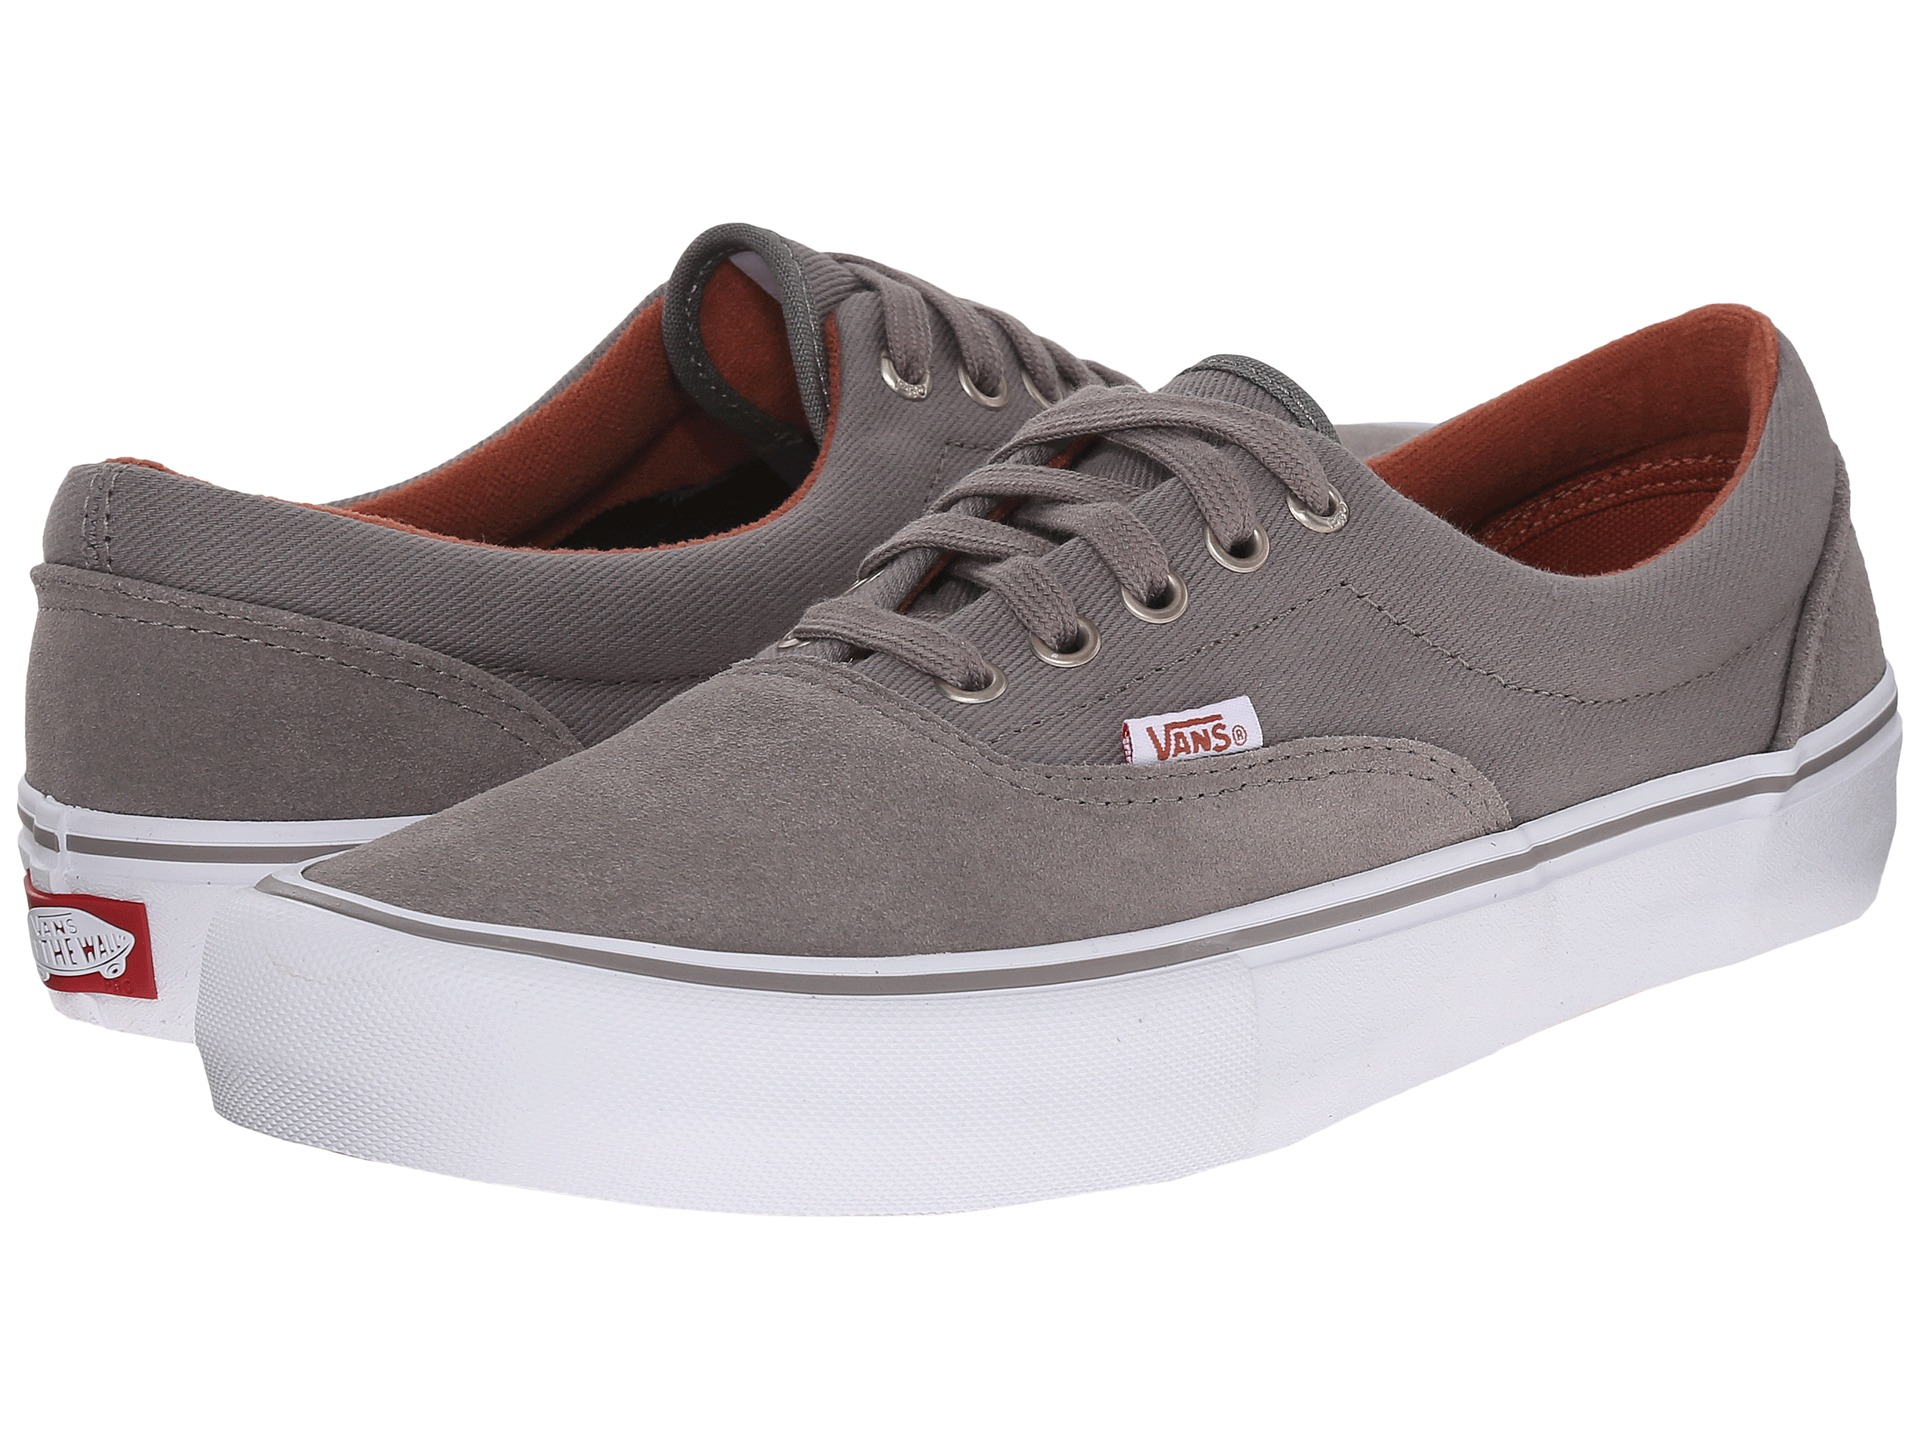 Vans Nylon Shoes